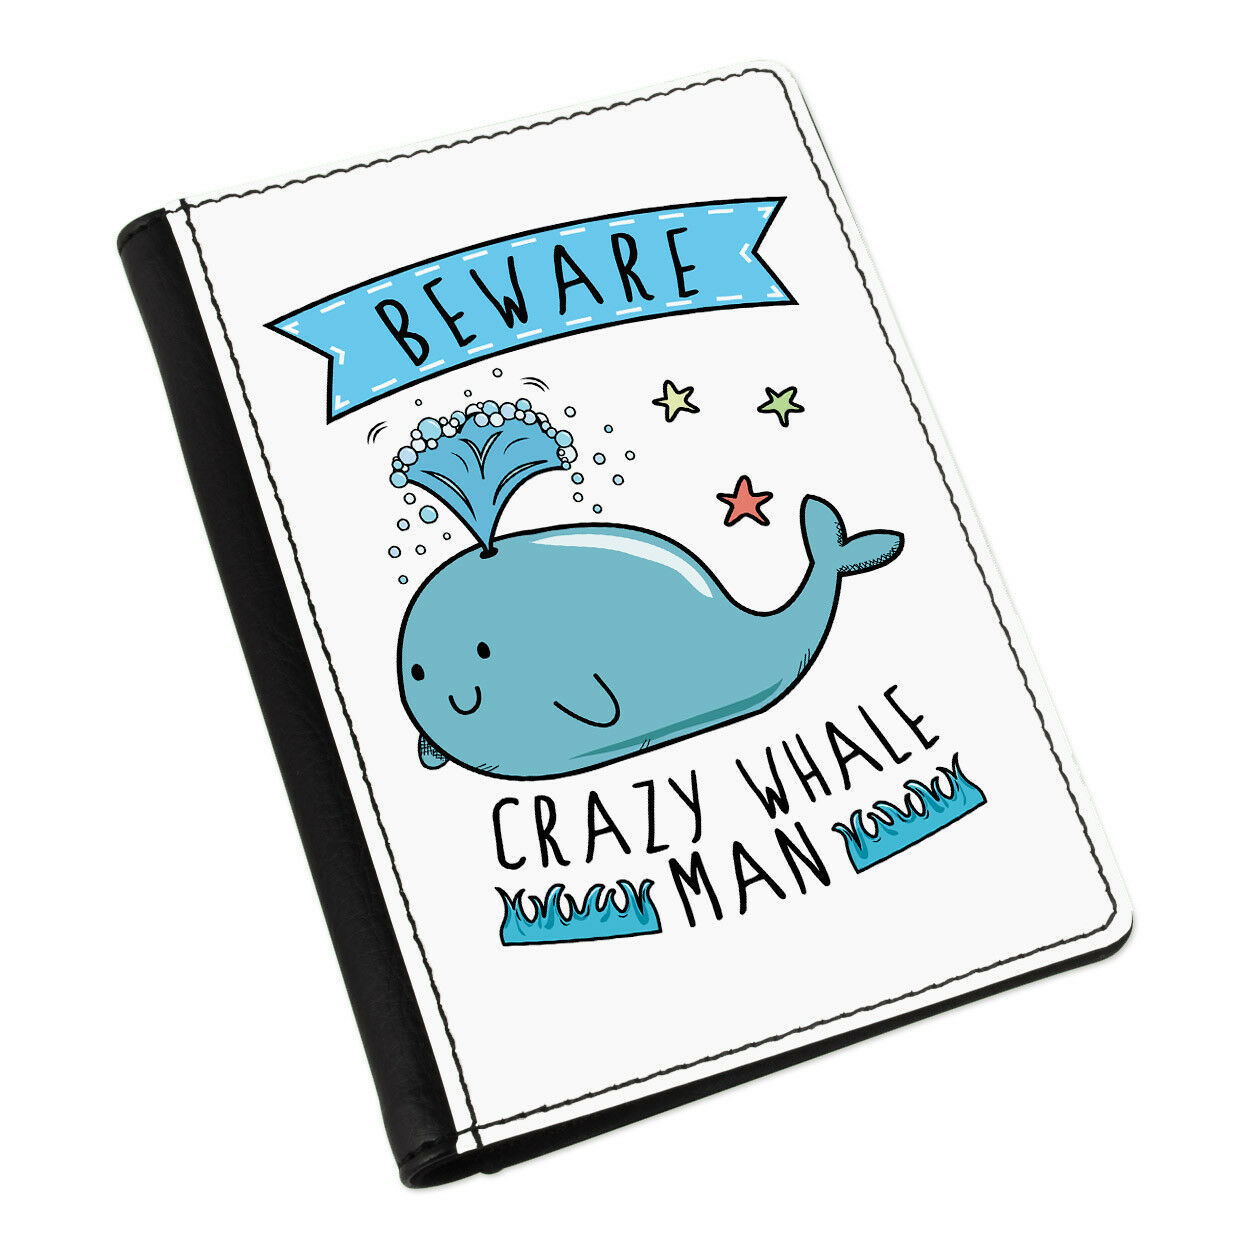 Beware Beware Beware Crazy Whale on Passport Holder Cover Case Wallet-Funny 74be03